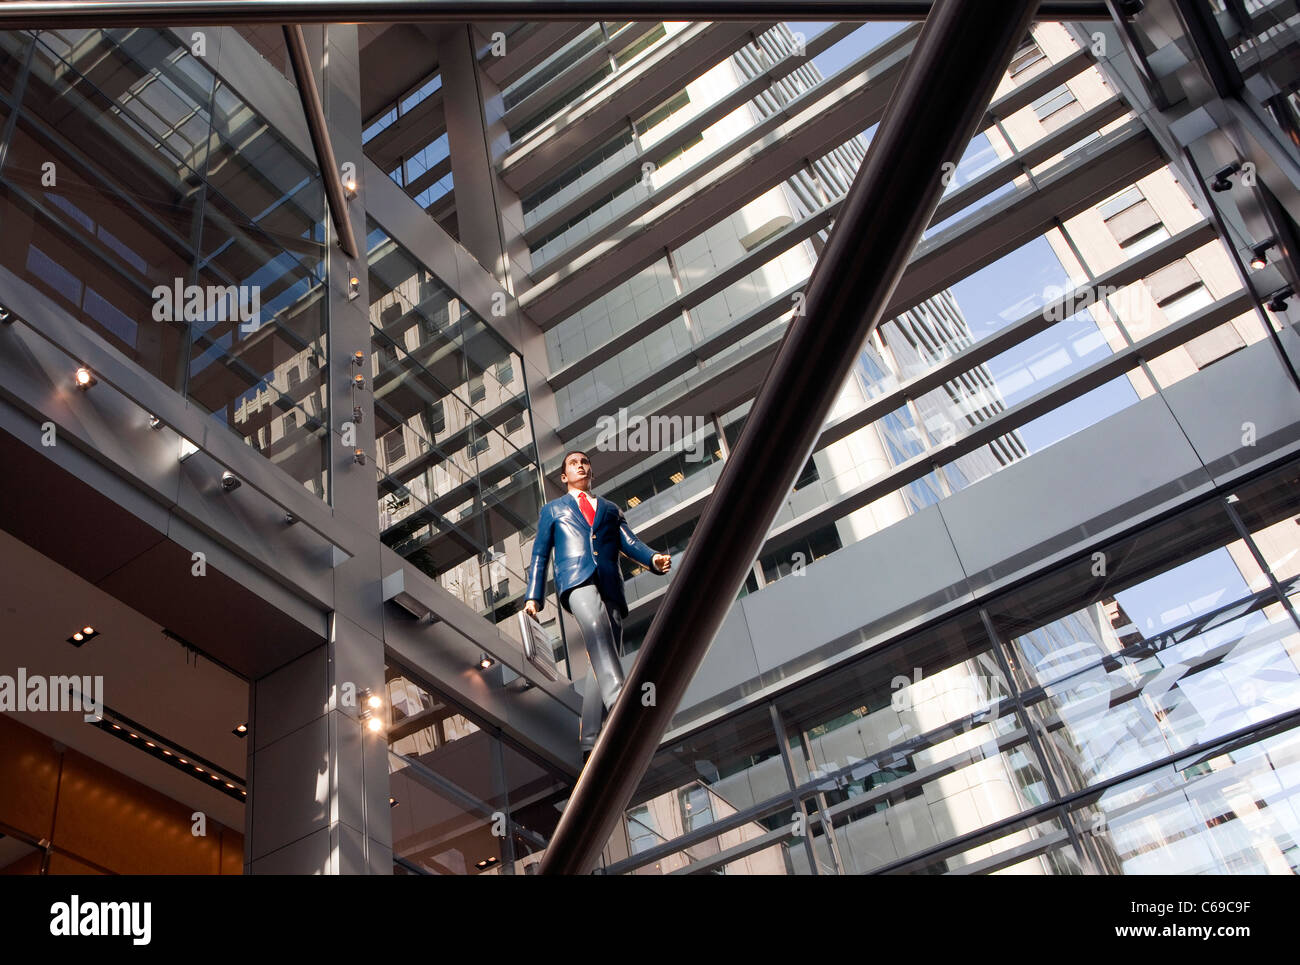 A view of the lobby of the Comcast Center in Philadelphia